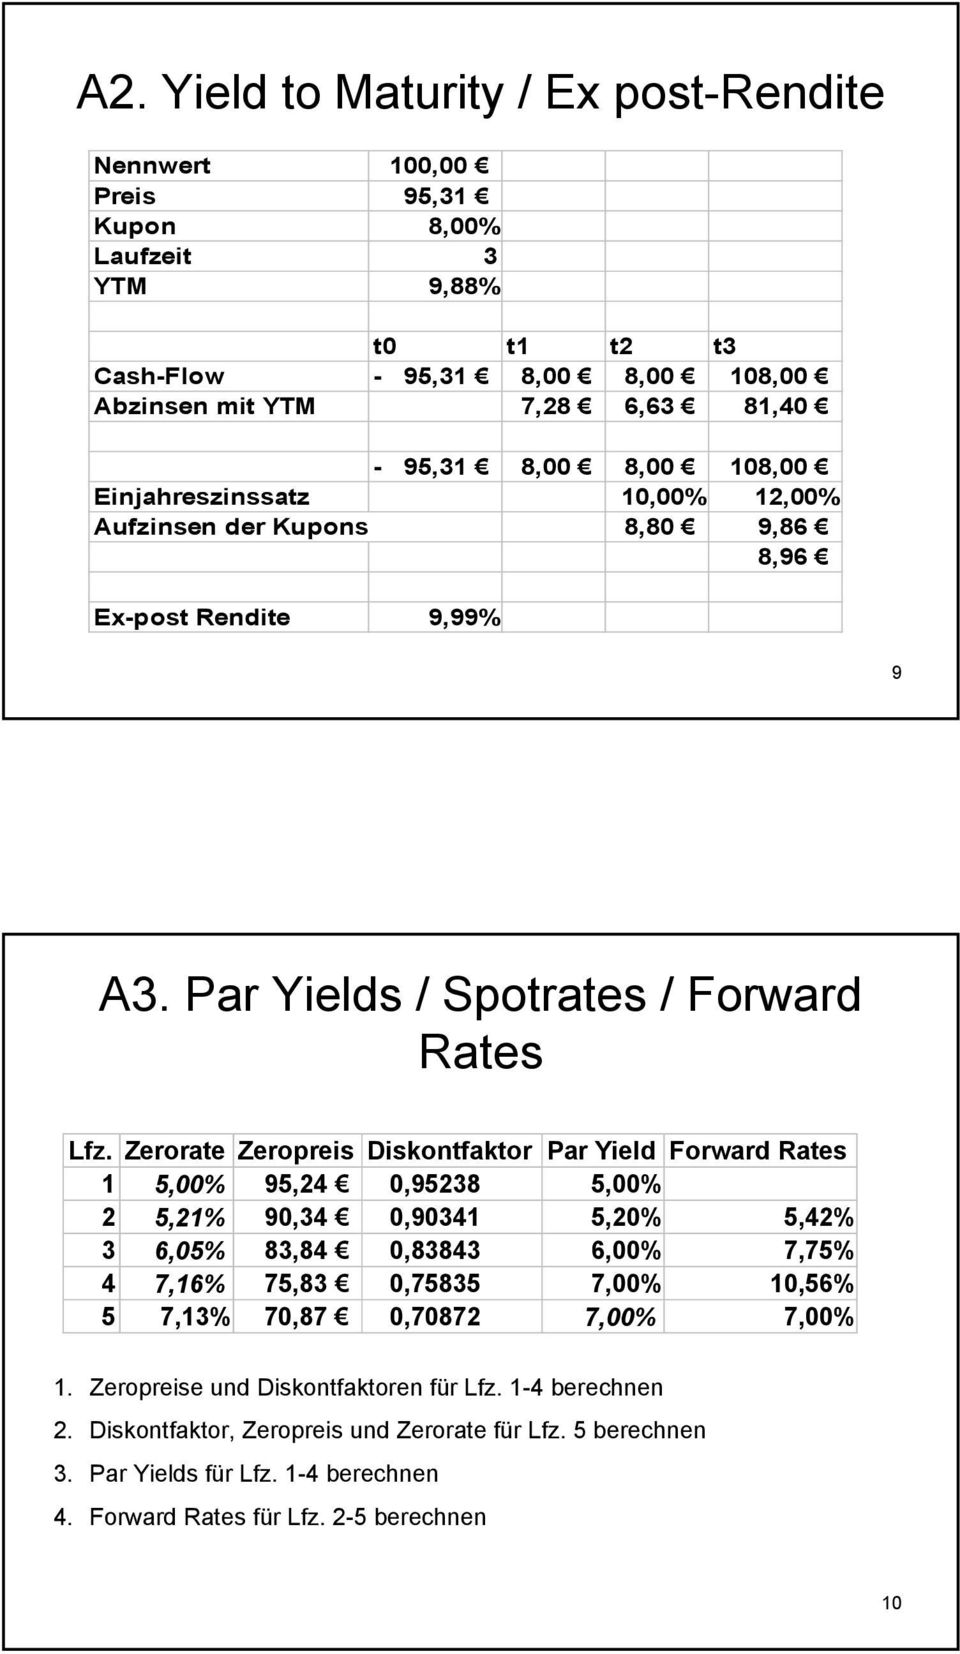 Zerorate Zeropreis Diskotaktor Par Yield Forward Rates 5,00% 95,4 0,958 5,00% 5,% 90,4 0,904 5,0% 5,4% 6,05% 8,84 0,884 6,00% 7,75% 4 7,6% 75,8 0,7585 7,00% 0,56% 5